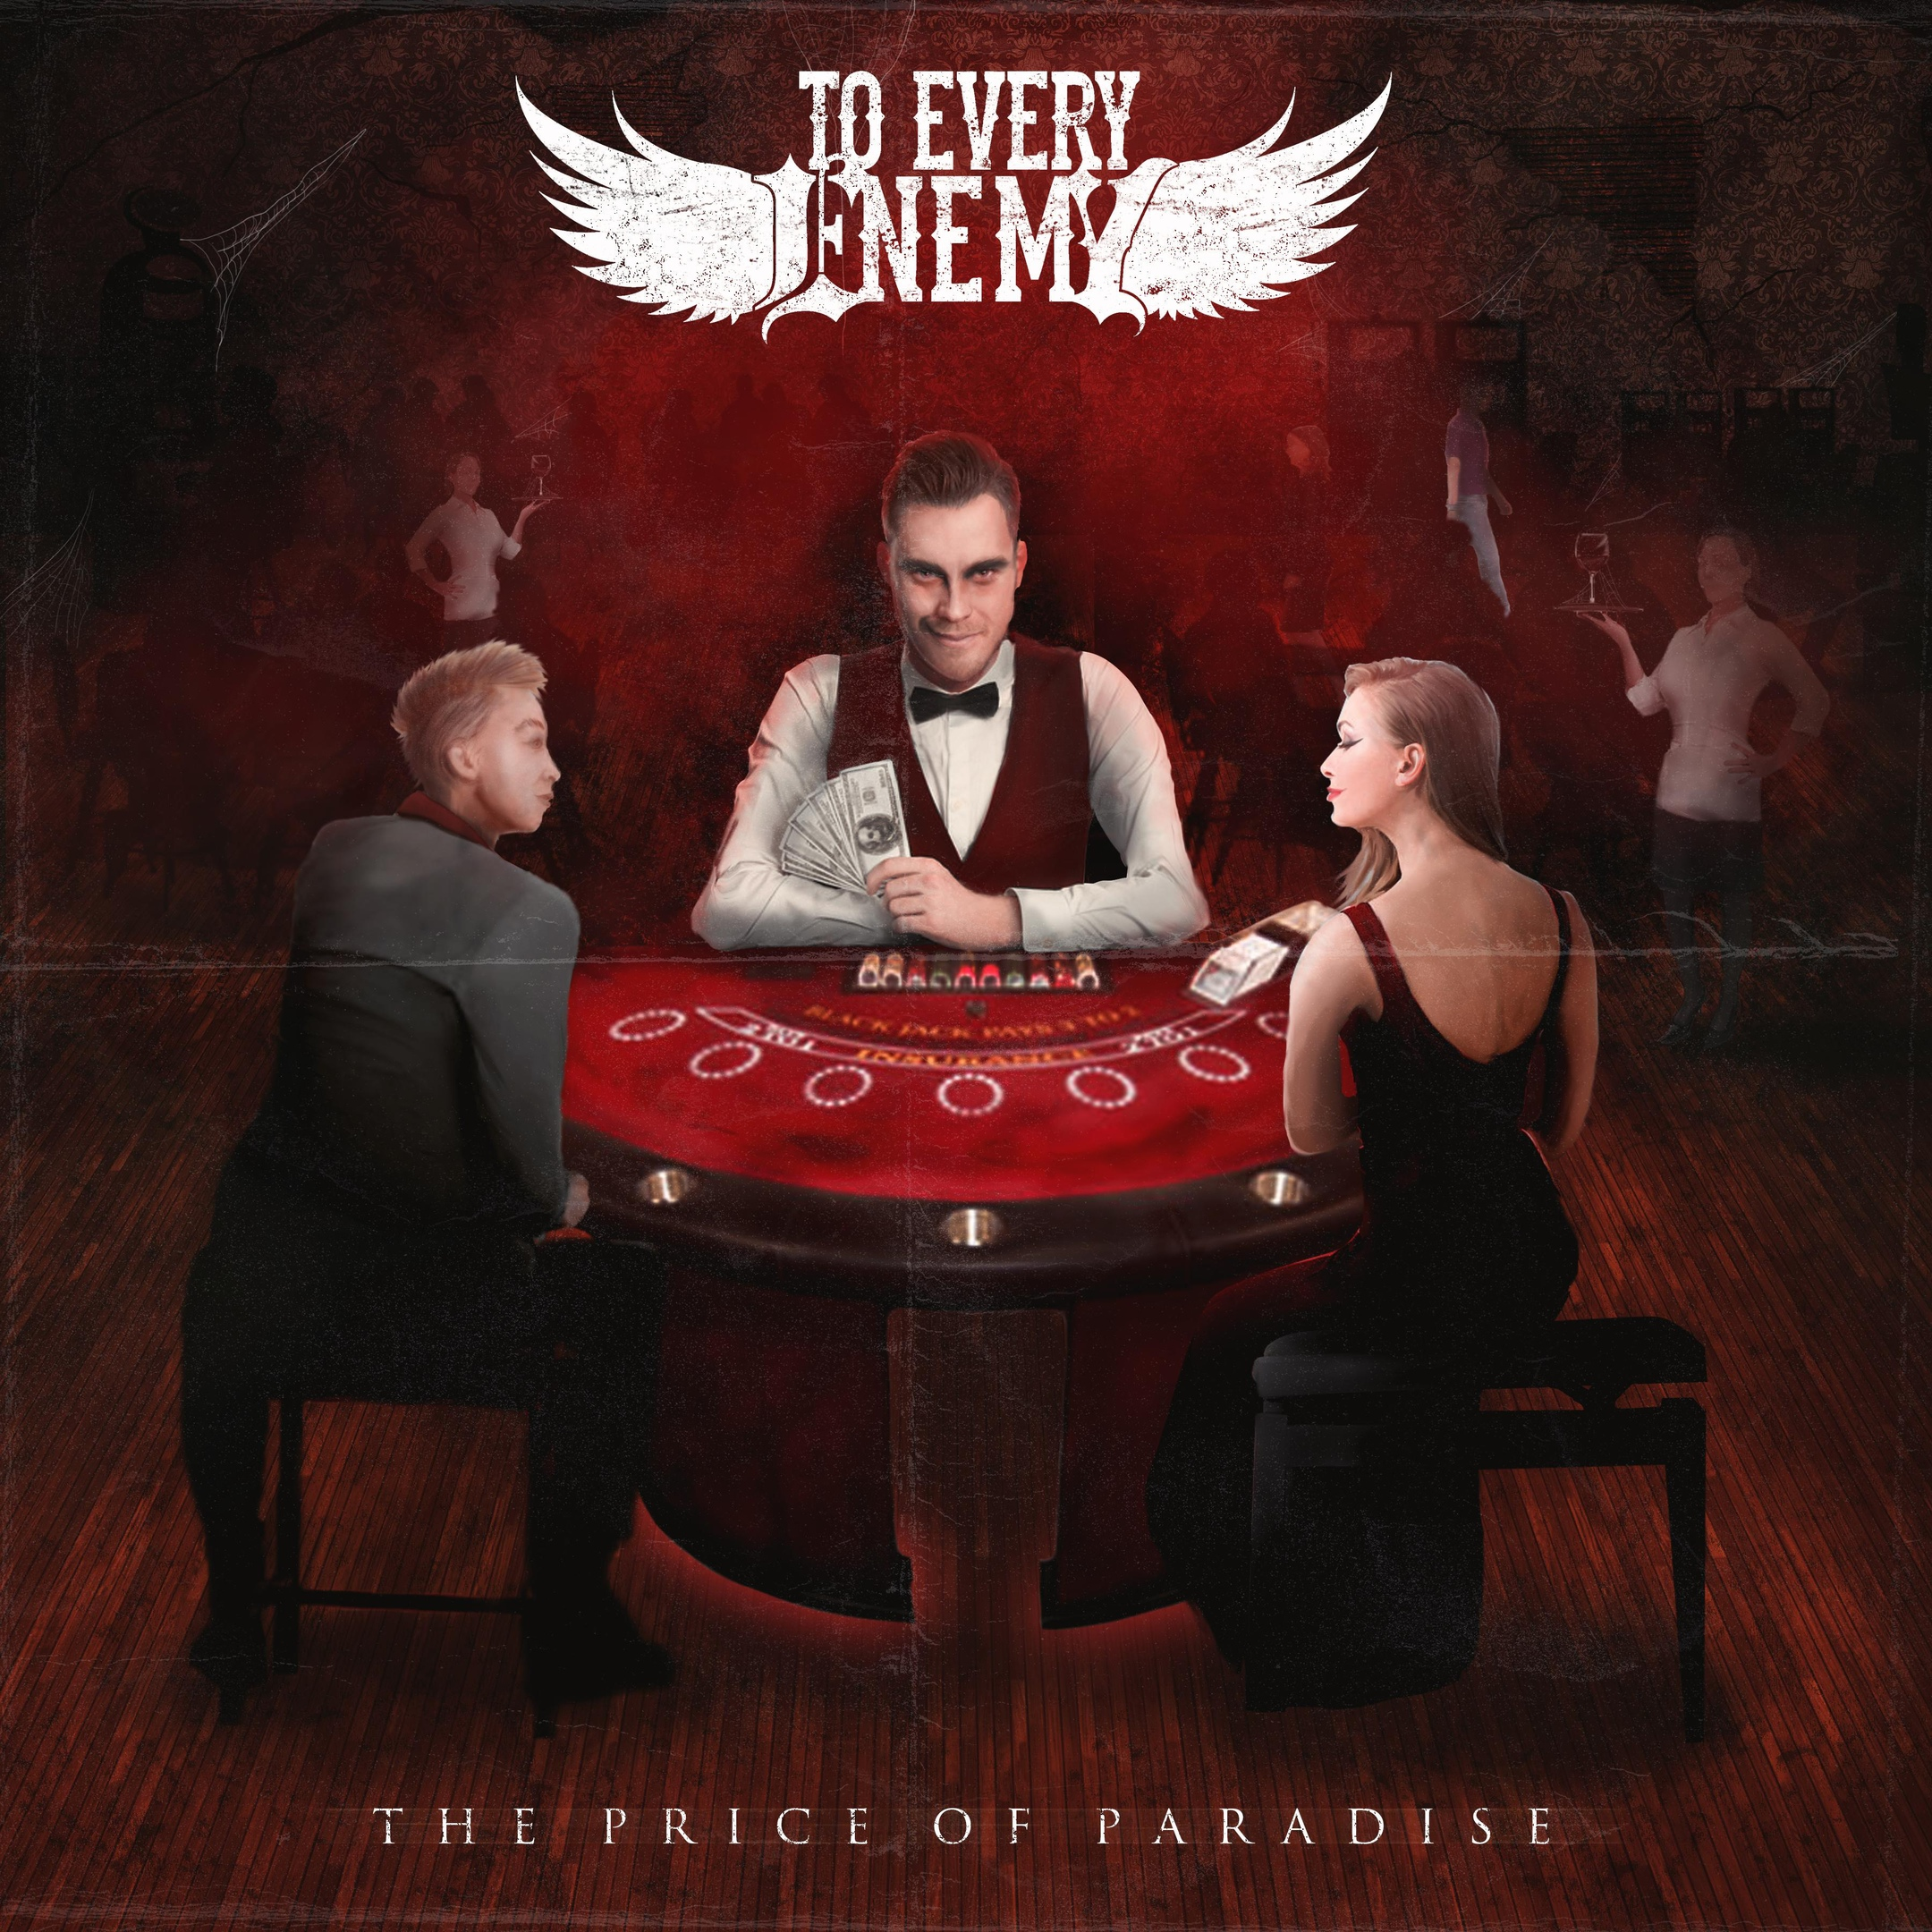 To Every Enemy – The Price of Paradise [single] (2015)